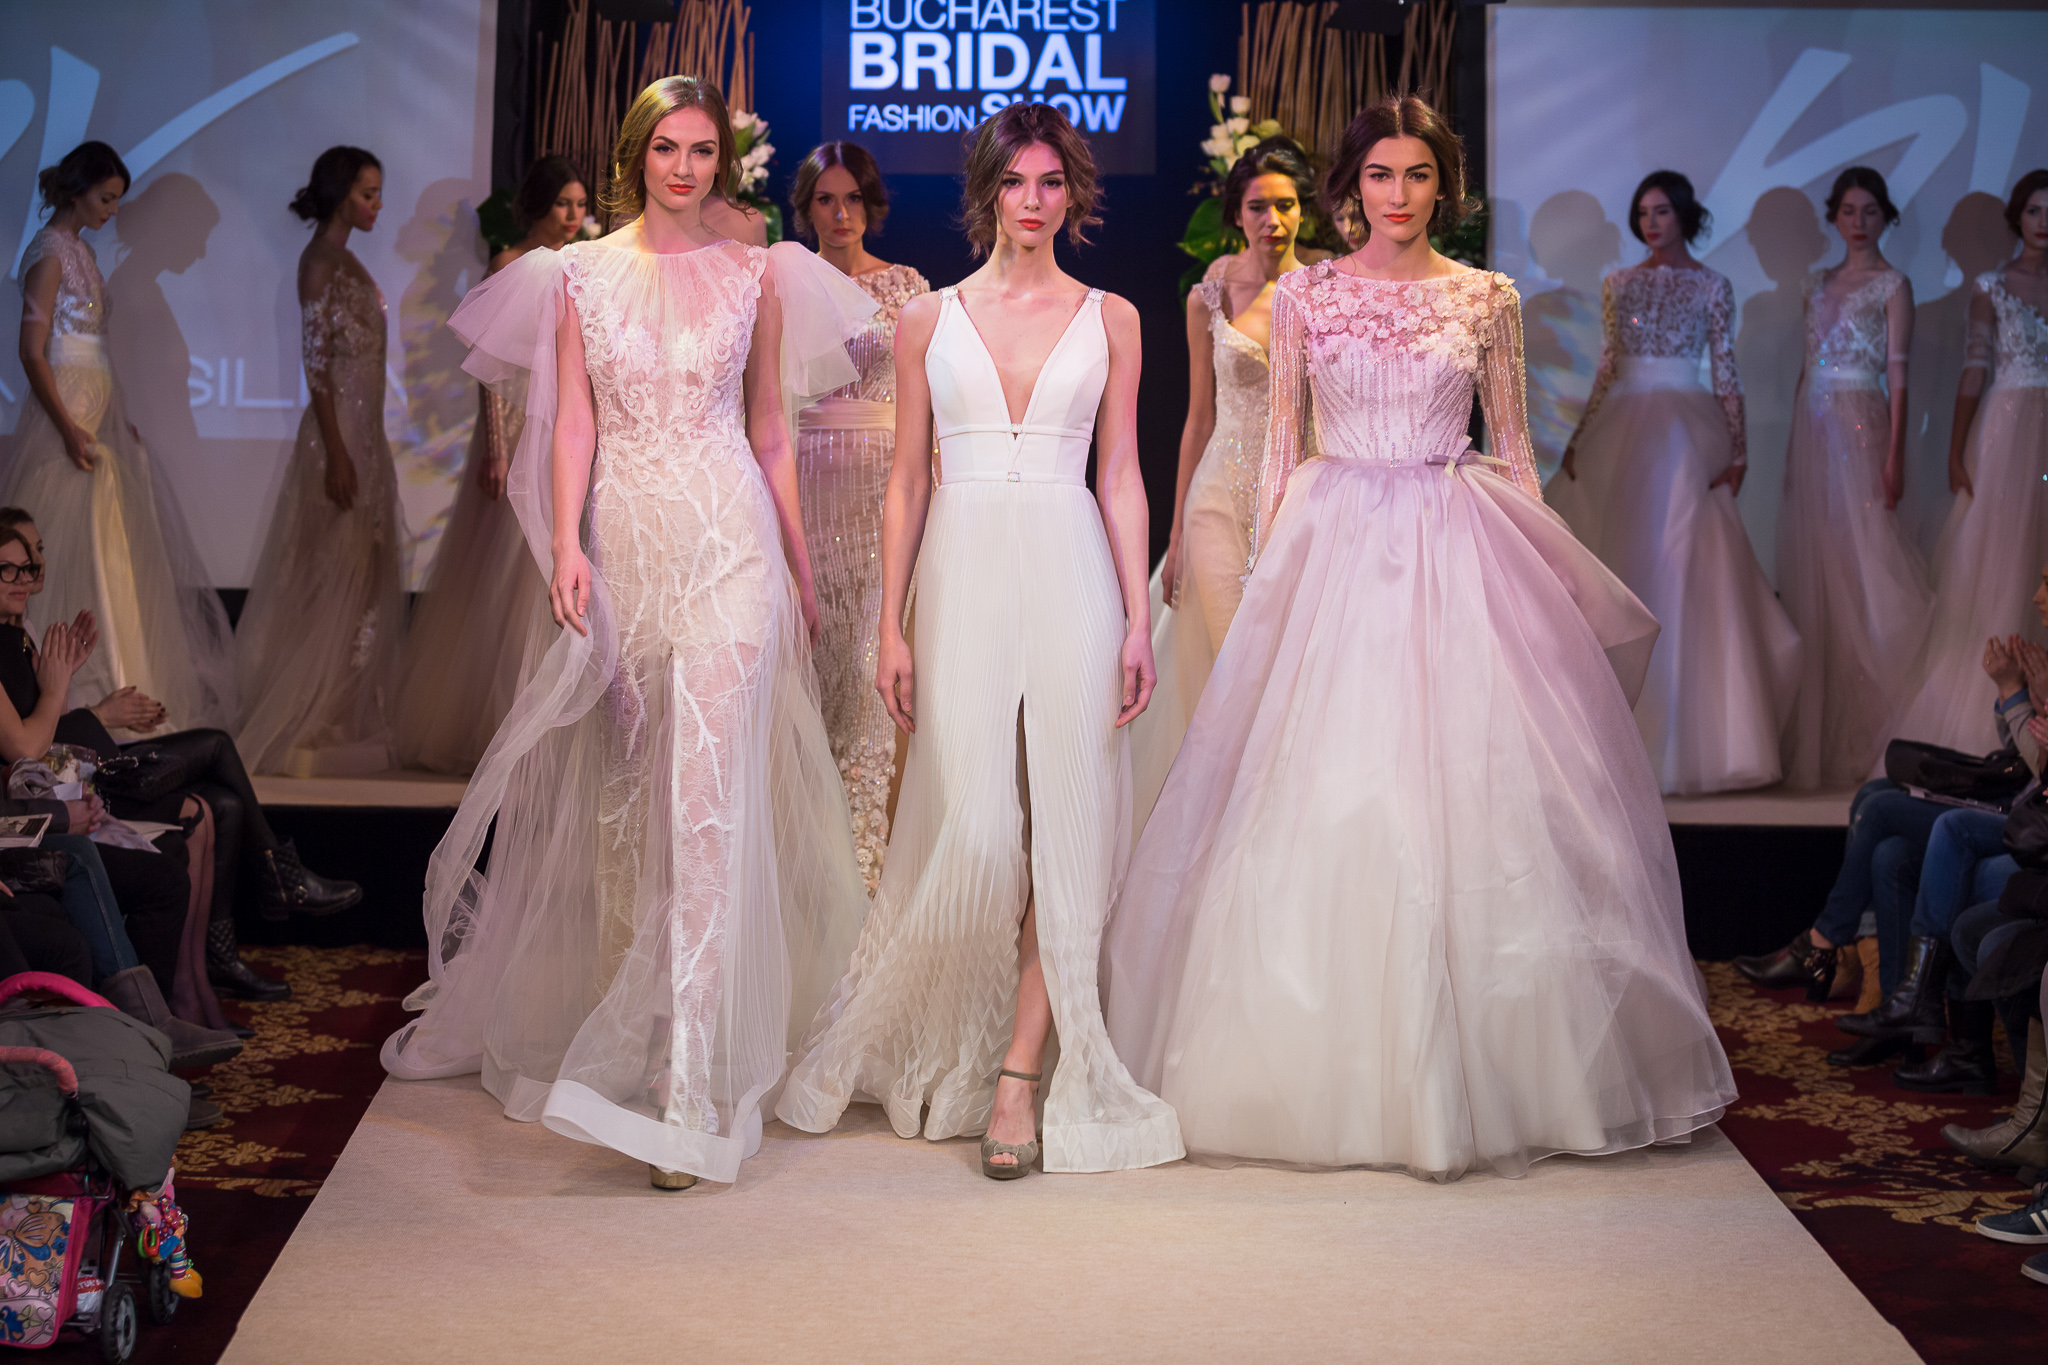 Bucharest Bridal Fashion Shows, un regal al rochiilor de mireasa